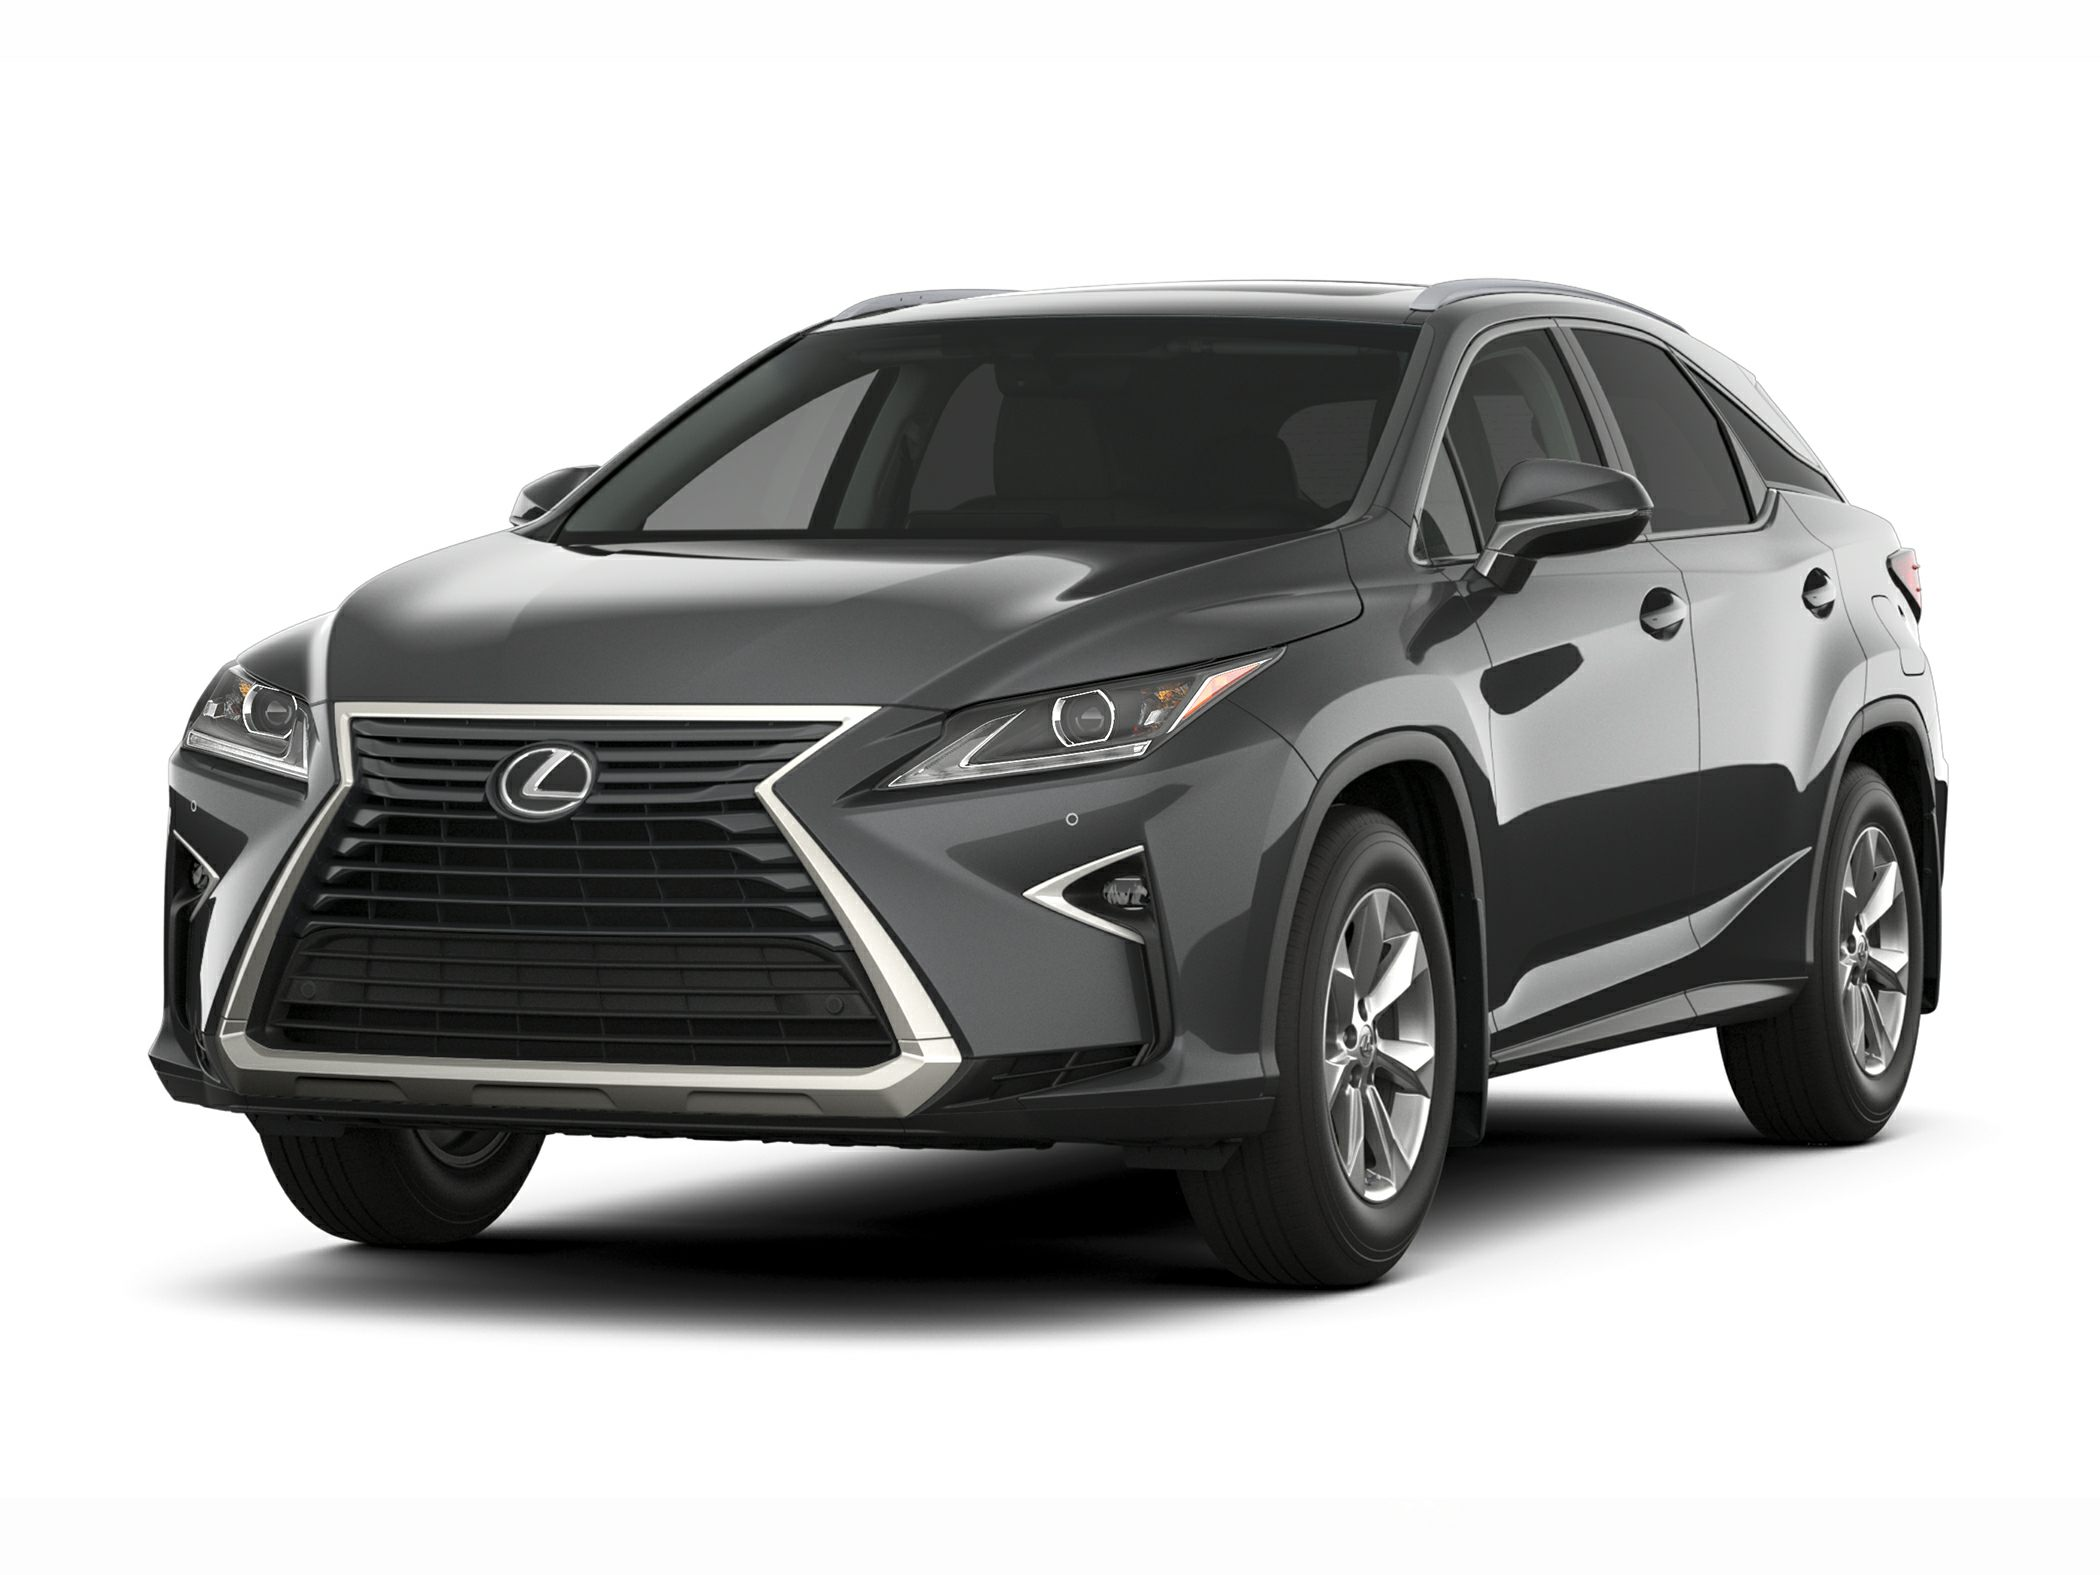 2018 Lexus RX 350h Owners Manual